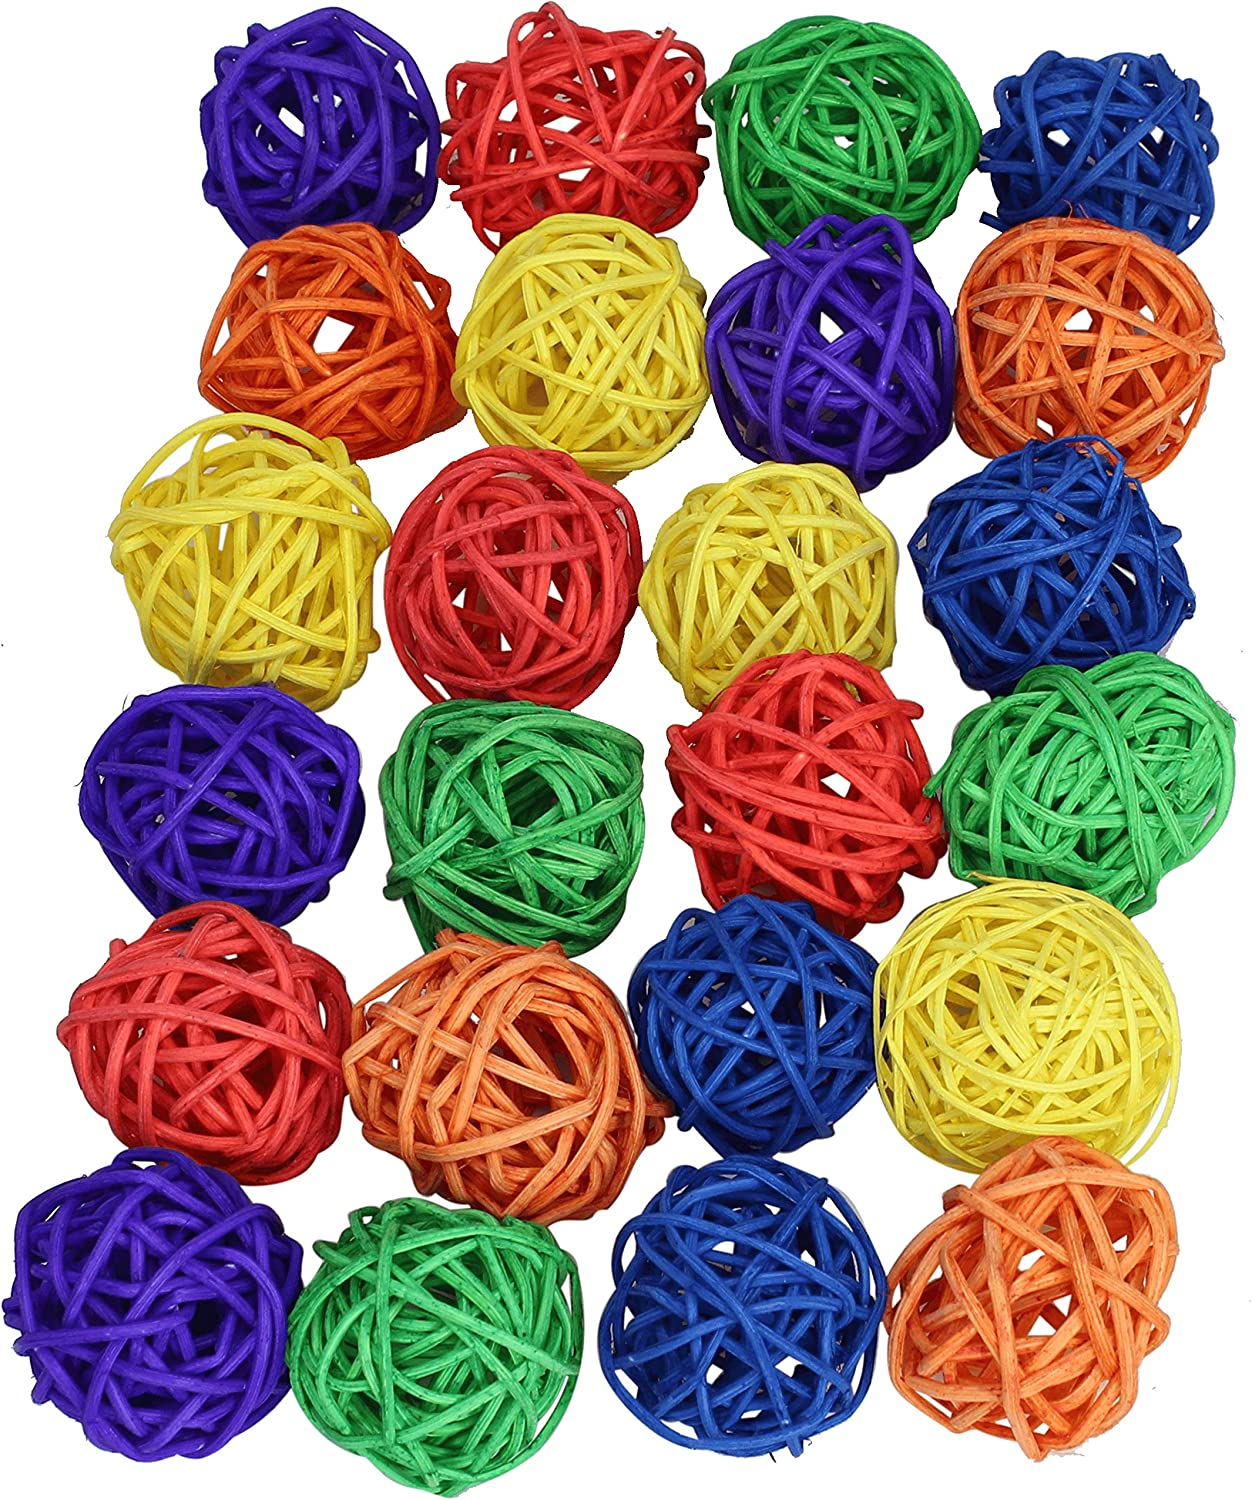 Bonka Bird Discount is also underway Toys Vine Balls Natural Colorful Stuffed Now free shipping Small Medium